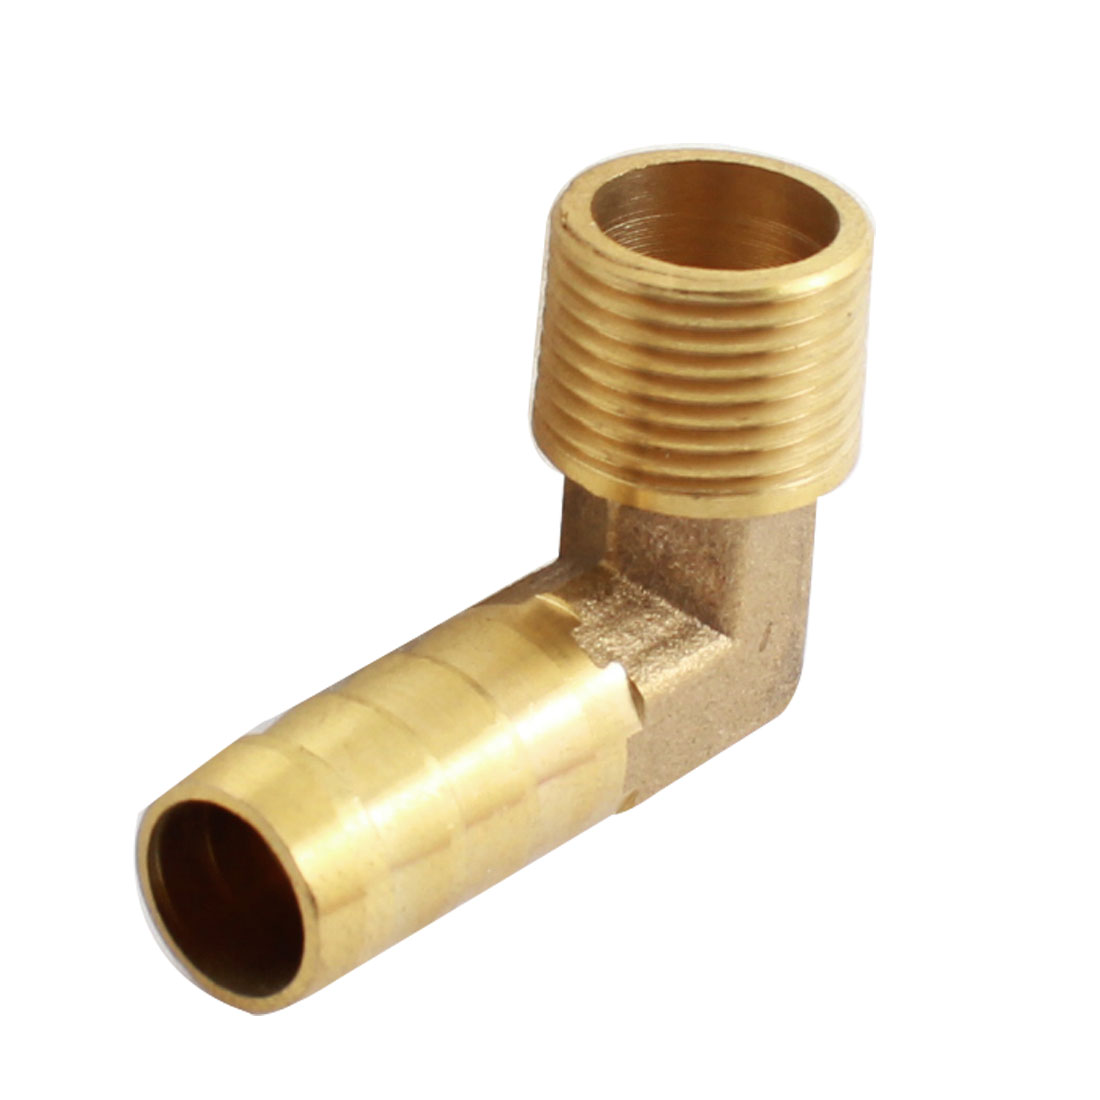 Air Pneumatic 3/8PT Male Thread 12mm Tube Dia Right Angle Barb Coupler Fitting Joint Connector